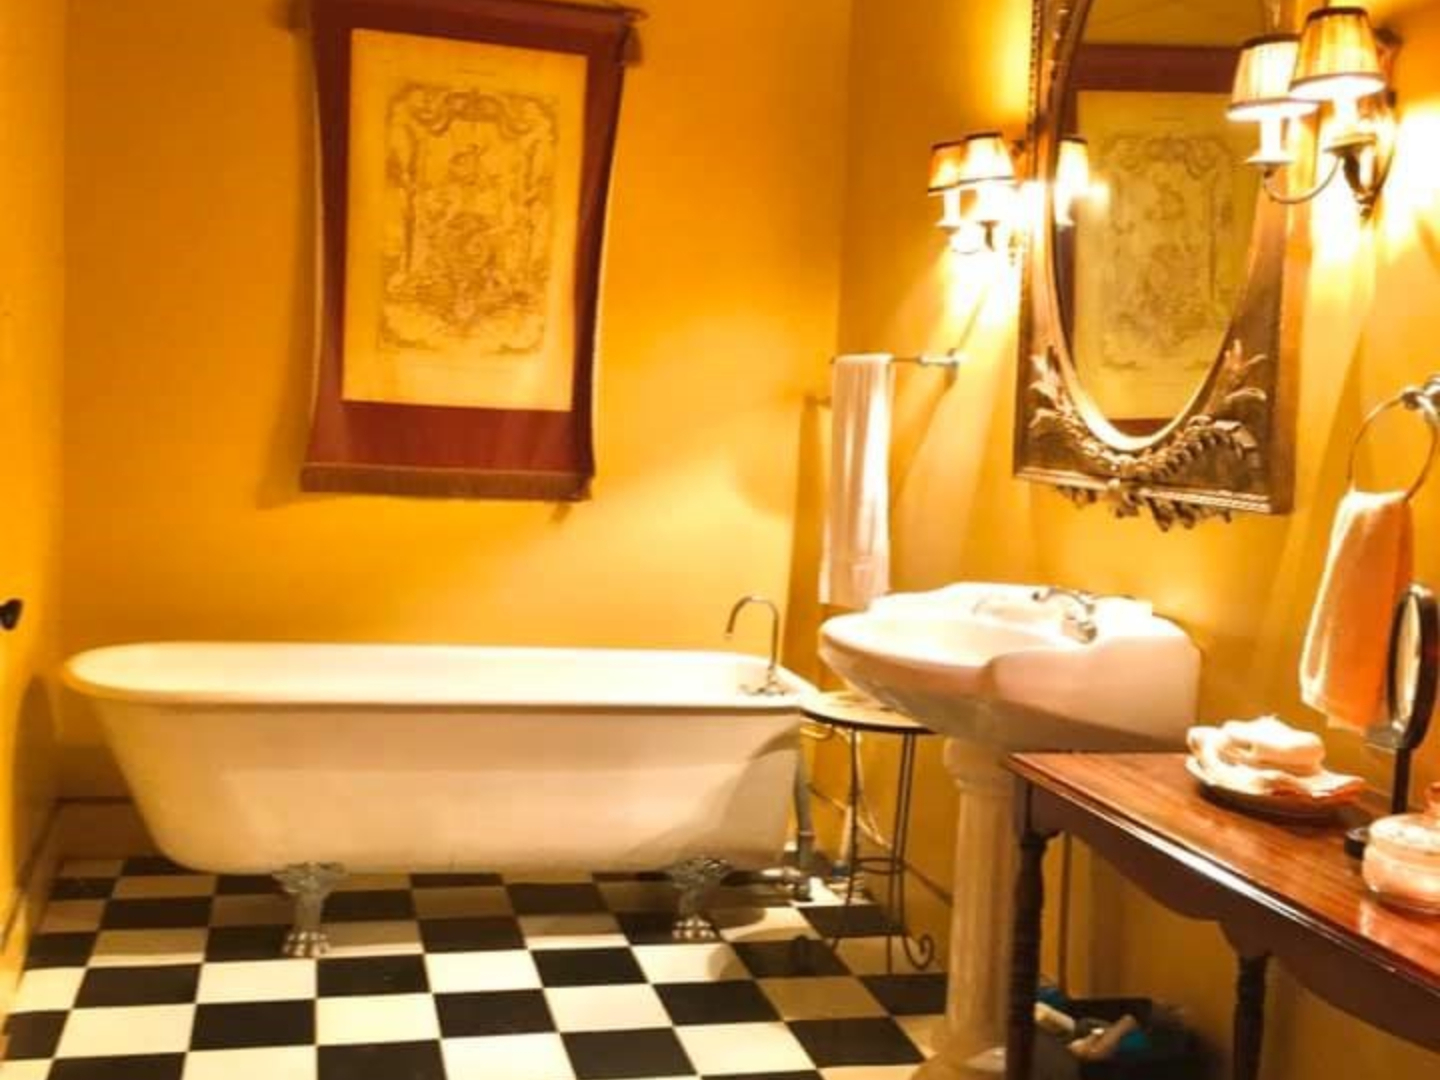 A close up of a sink in a small room at John LaFleur's Louisiana Creole Guesthouse.